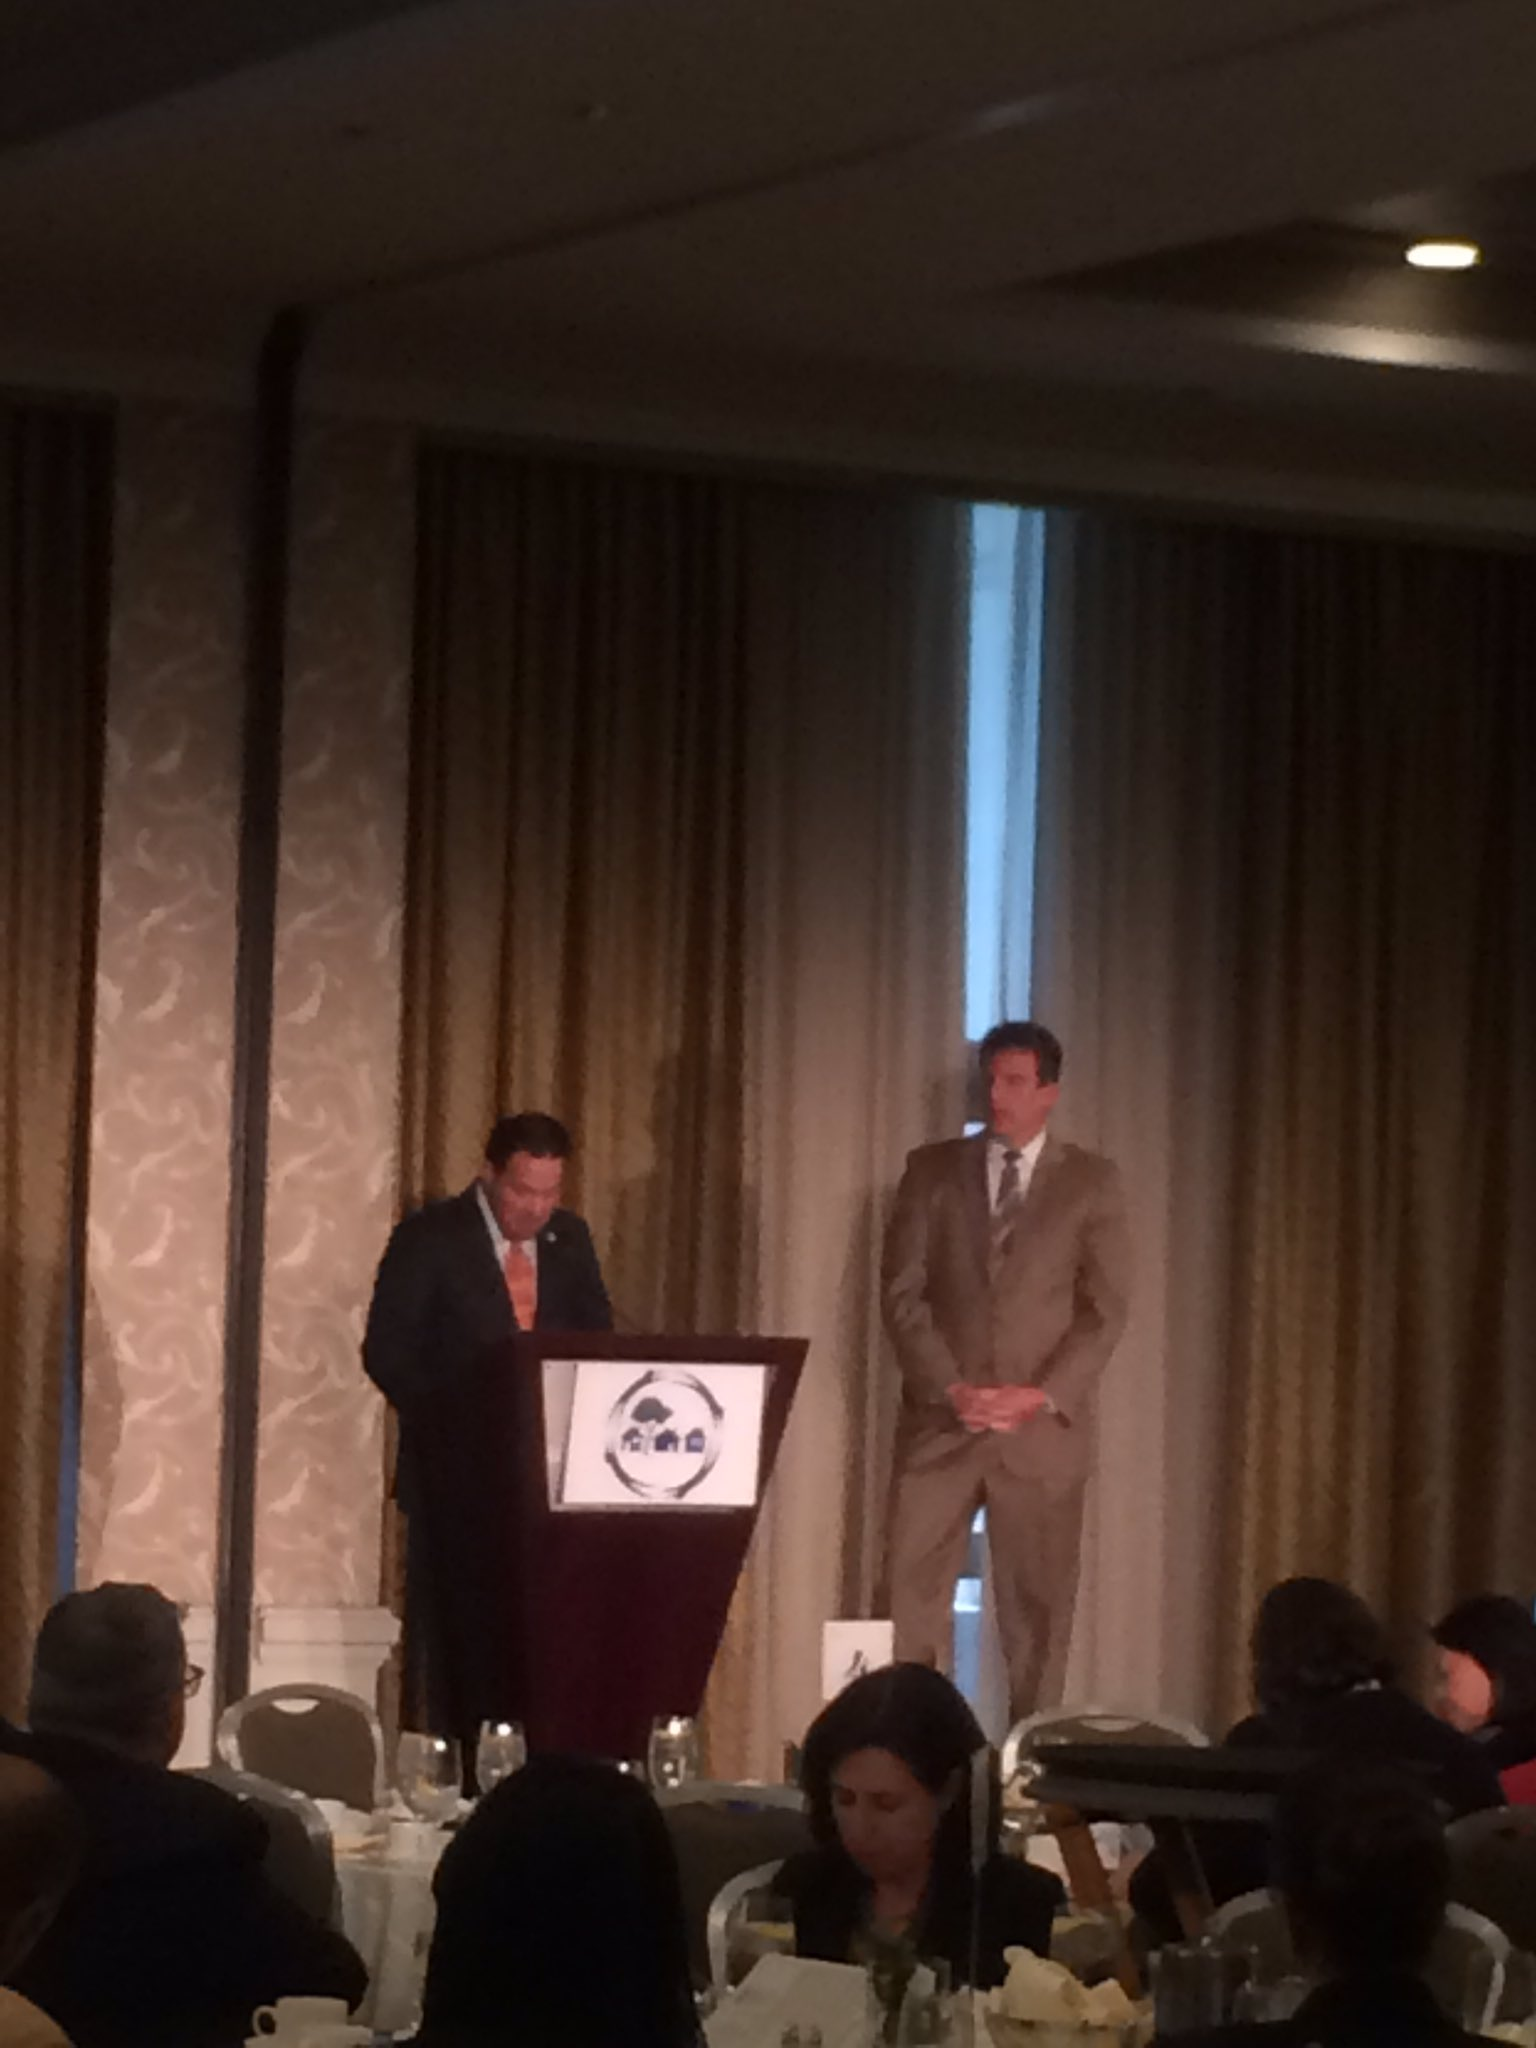 Thanks Bob Rivers of @easternbank & @JayAshEOHED for presenting this award to Tom Ambrosino & the city of Chelsea @ChelseaGov_MA #SCImpact https://t.co/JSErWRV6tl